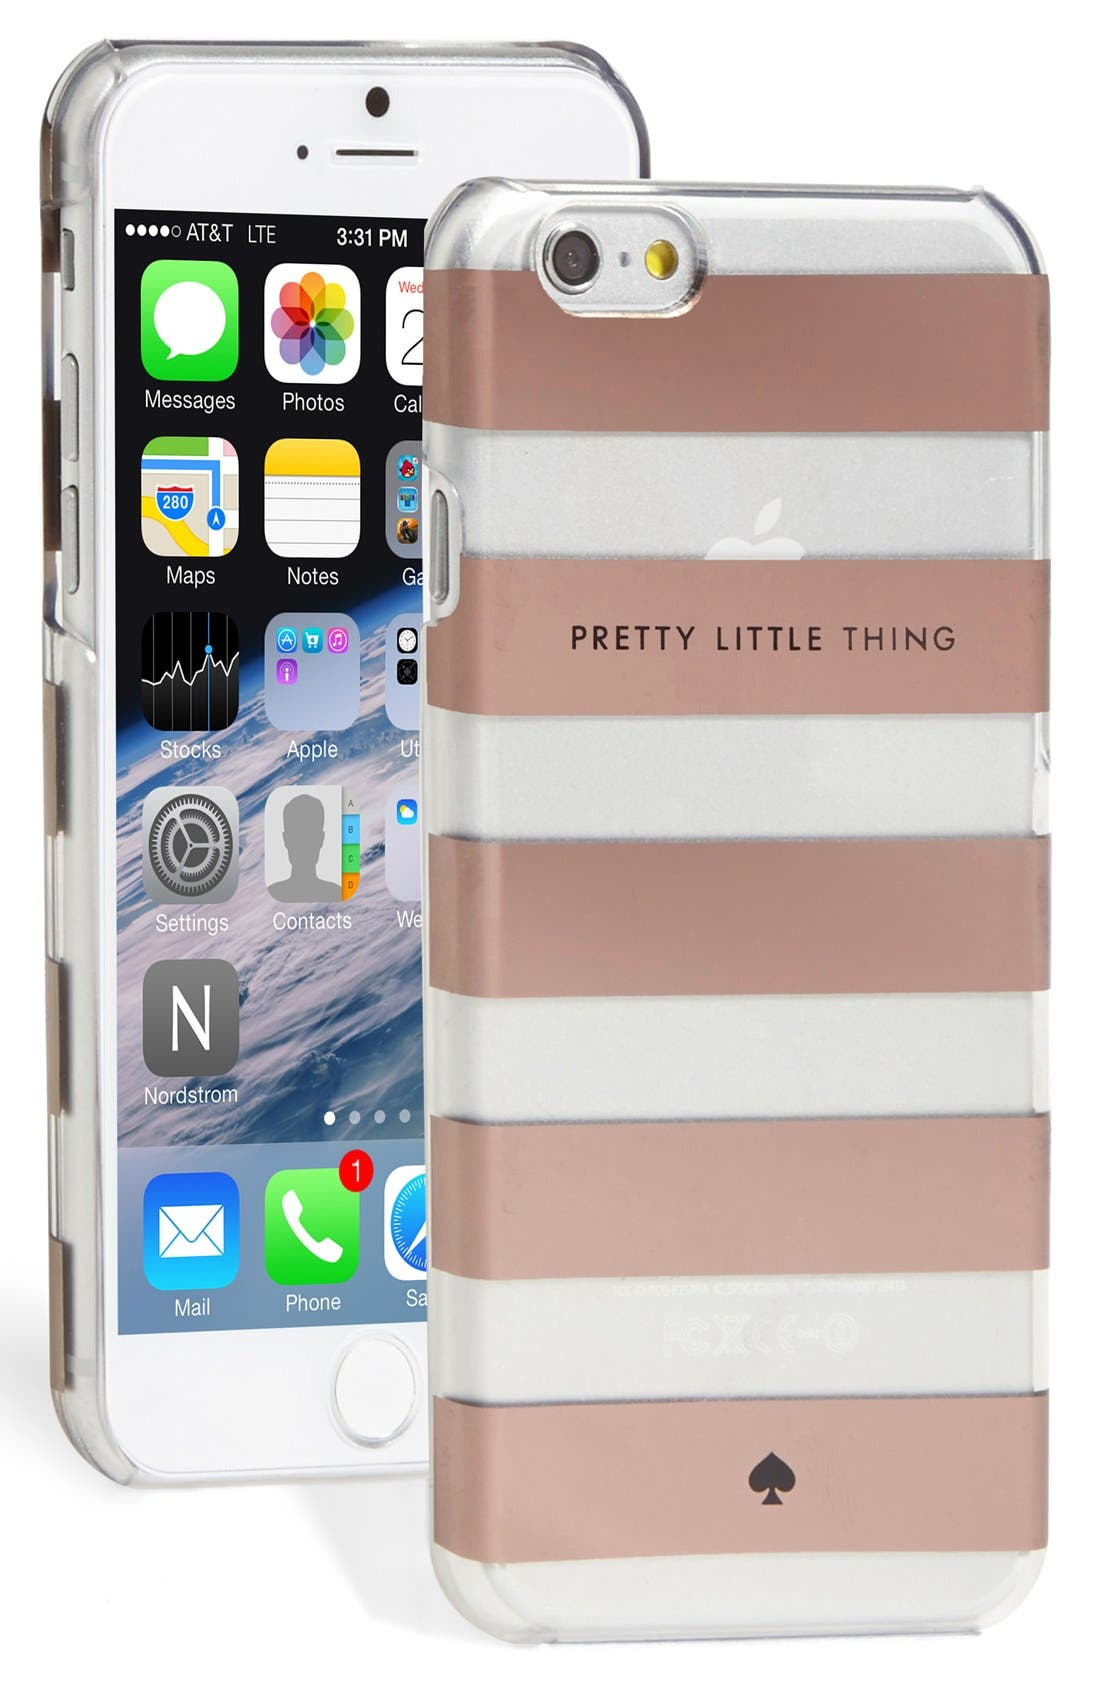 Alternate Image 1 Selected - kate spade new york 'pretty little thing' iPhone 6 case